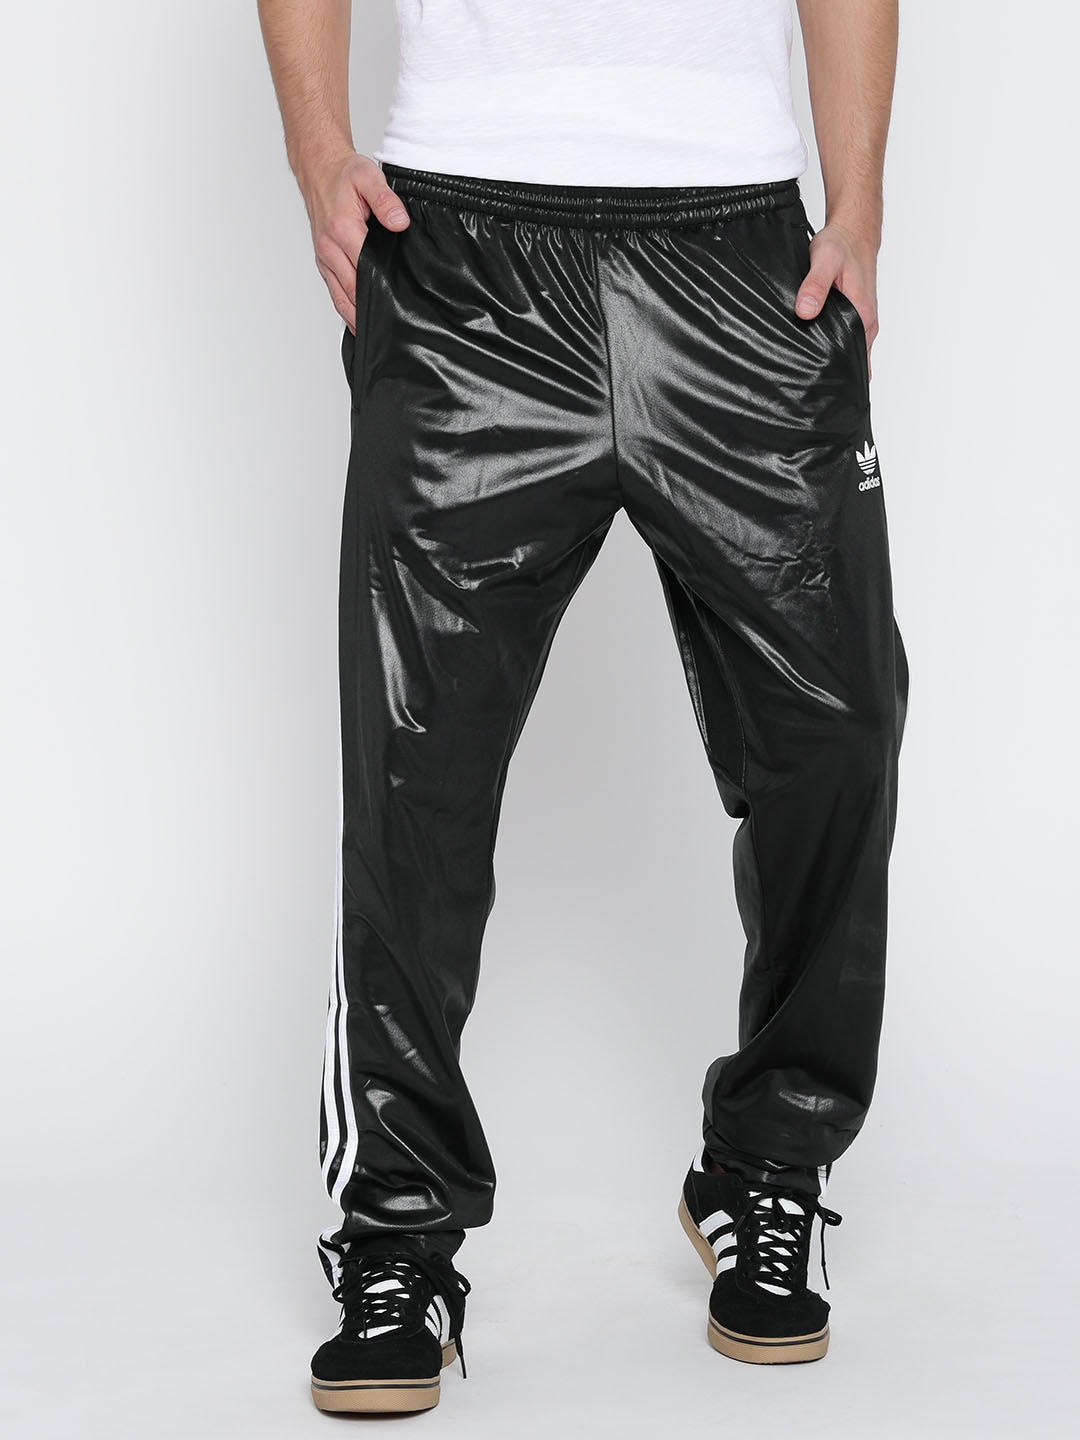 886e355c519f4 Adidas originals ay7716 Black Chile Cuffed Track Pants With Sheen- Price in  India